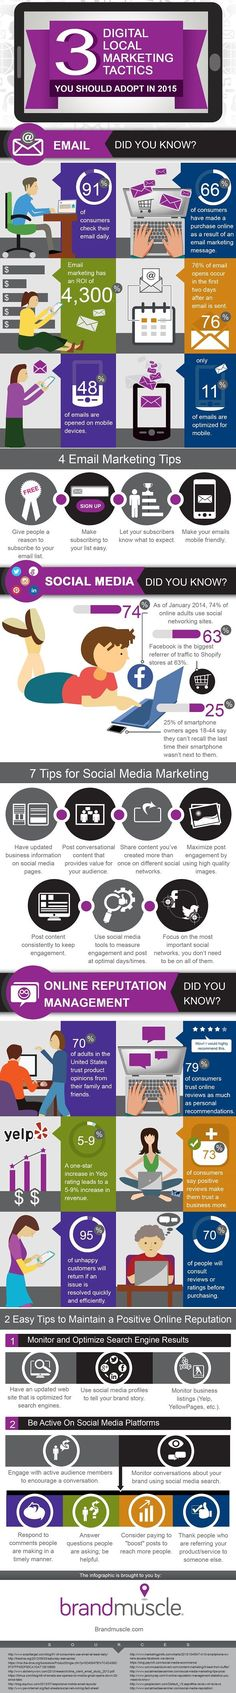 Digital tactics help local marketing but are difficult for SMBs to master. This infographic has tips and stats for email, social media and online branding. Inbound Marketing, Marketing Online, Marketing Tactics, Digital Marketing Strategy, Business Marketing, Content Marketing, Social Media Marketing, Online Business, Affiliate Marketing